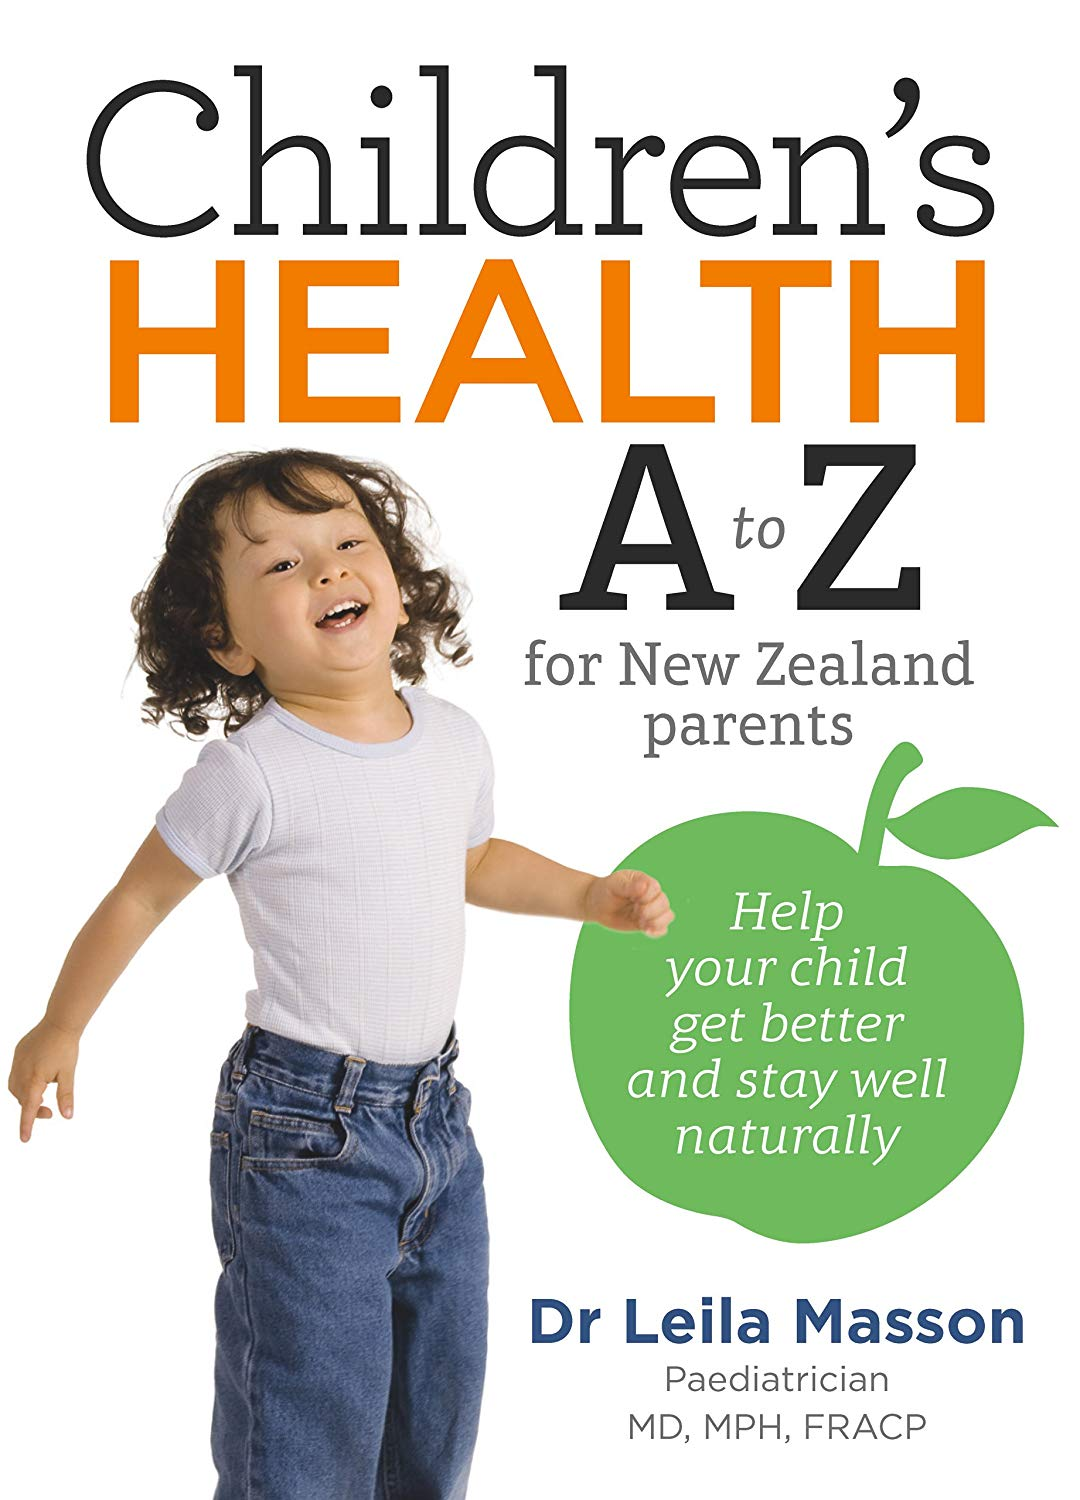 Children's Health A-Z